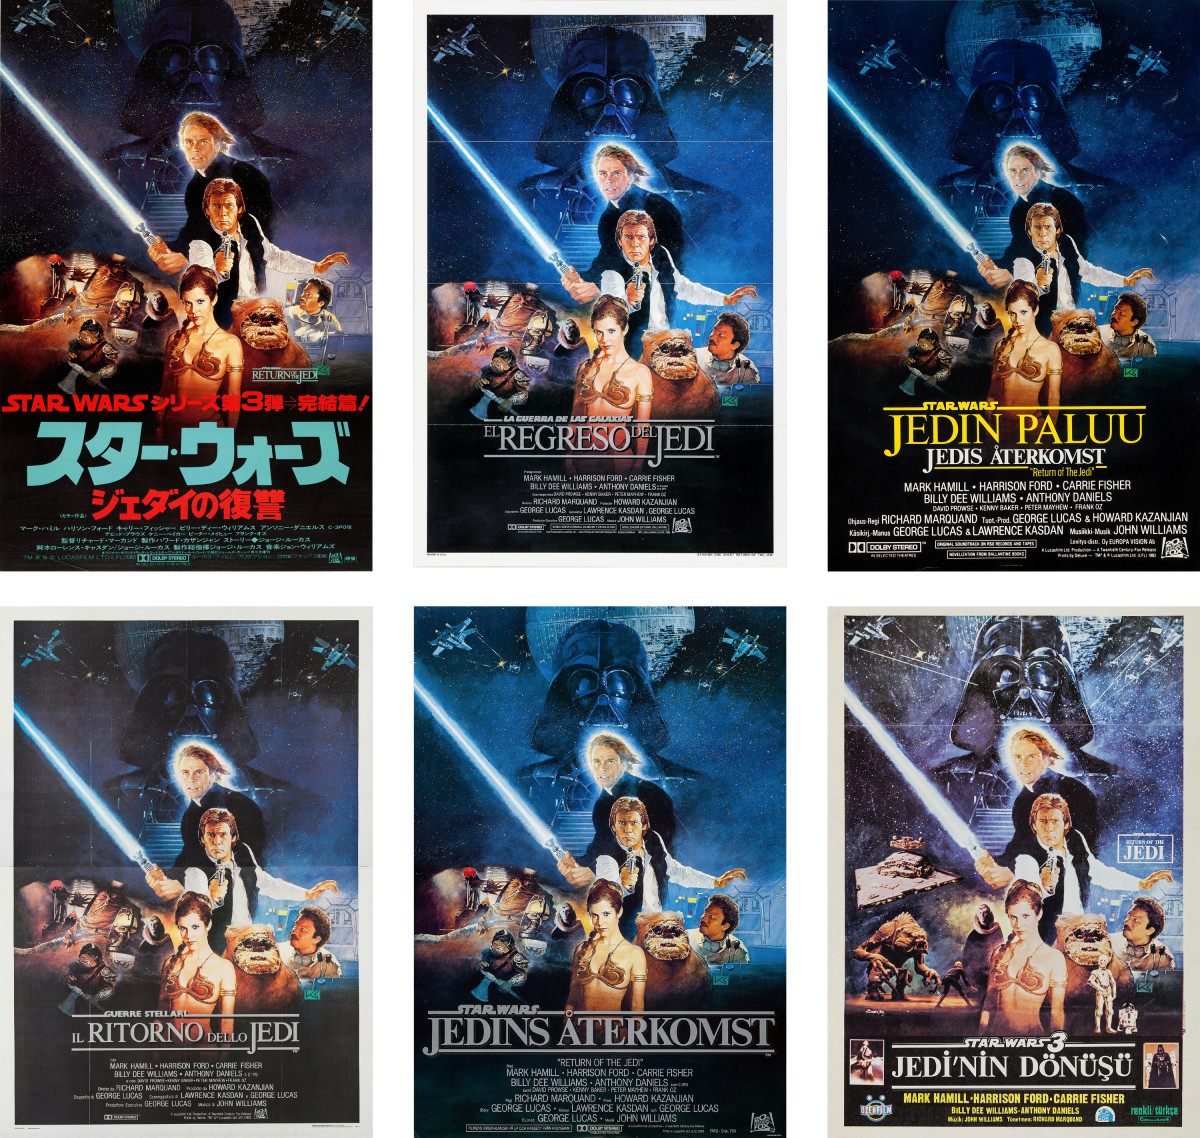 Star Wars Around The World Short Circuit Movie Posters From Poster Shop Clockwise Top Left Kazuhiko Sano Return Of Jedi Japan Spain Finland Turkey Sweden And Italy 1983 86